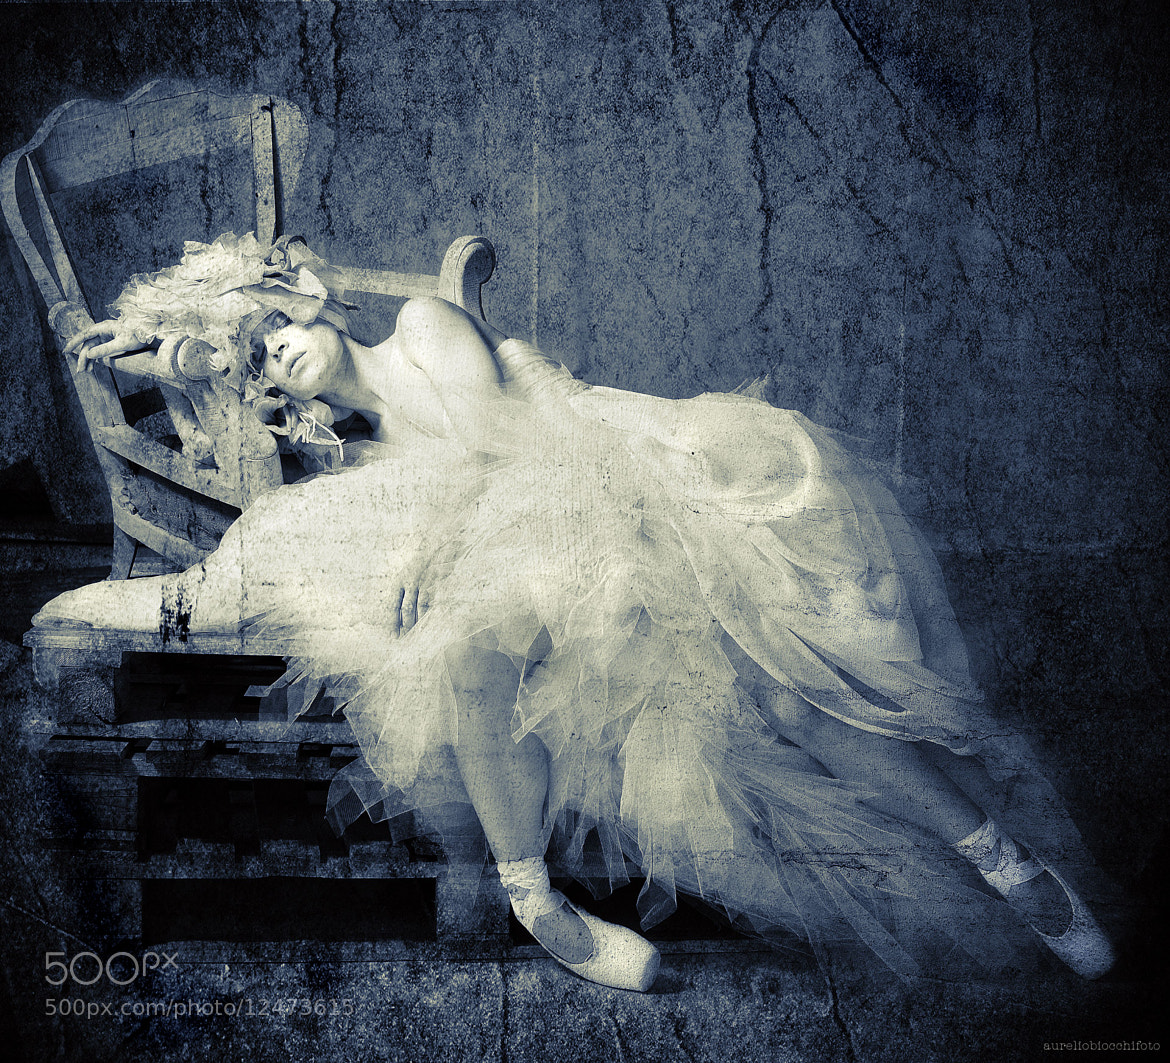 Photograph LA BALLERINA by Aurelio Biocchi on 500px